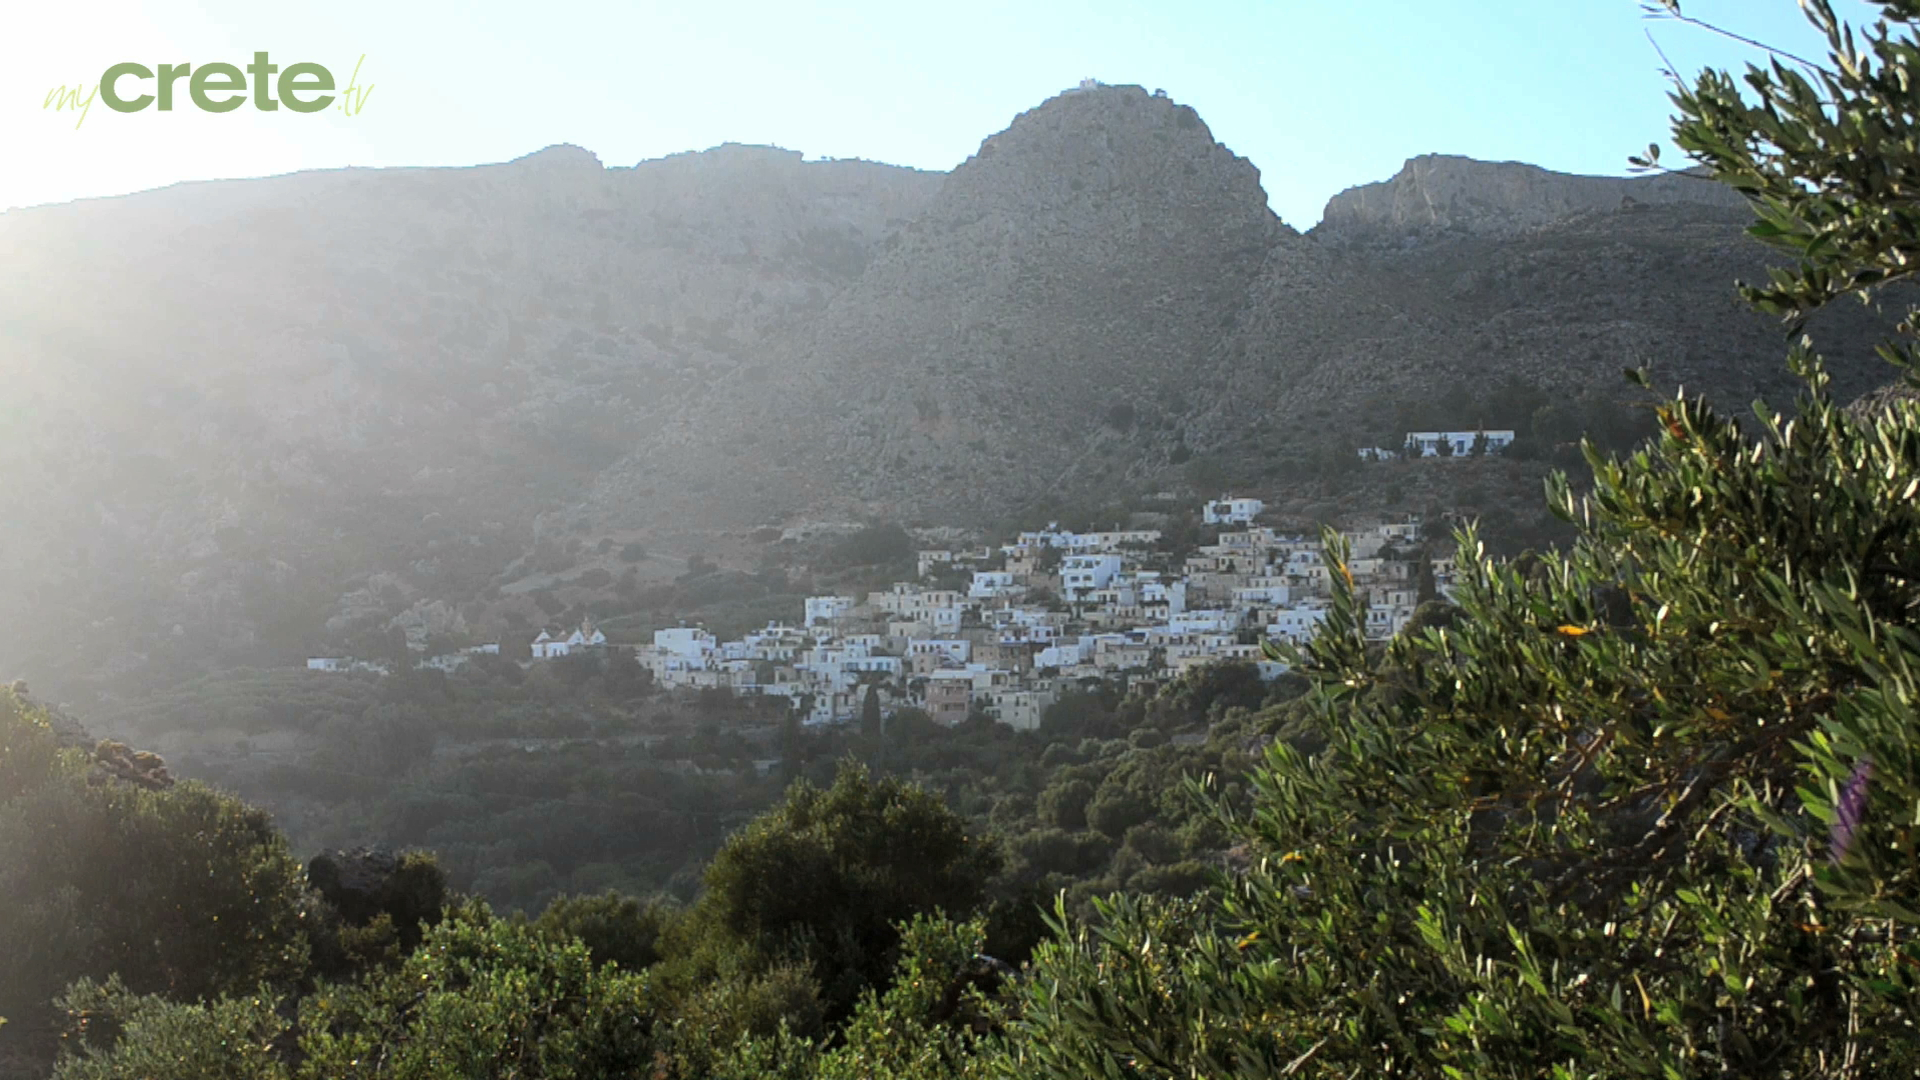 Top 5 Picturesque Villages in Lasithi Region